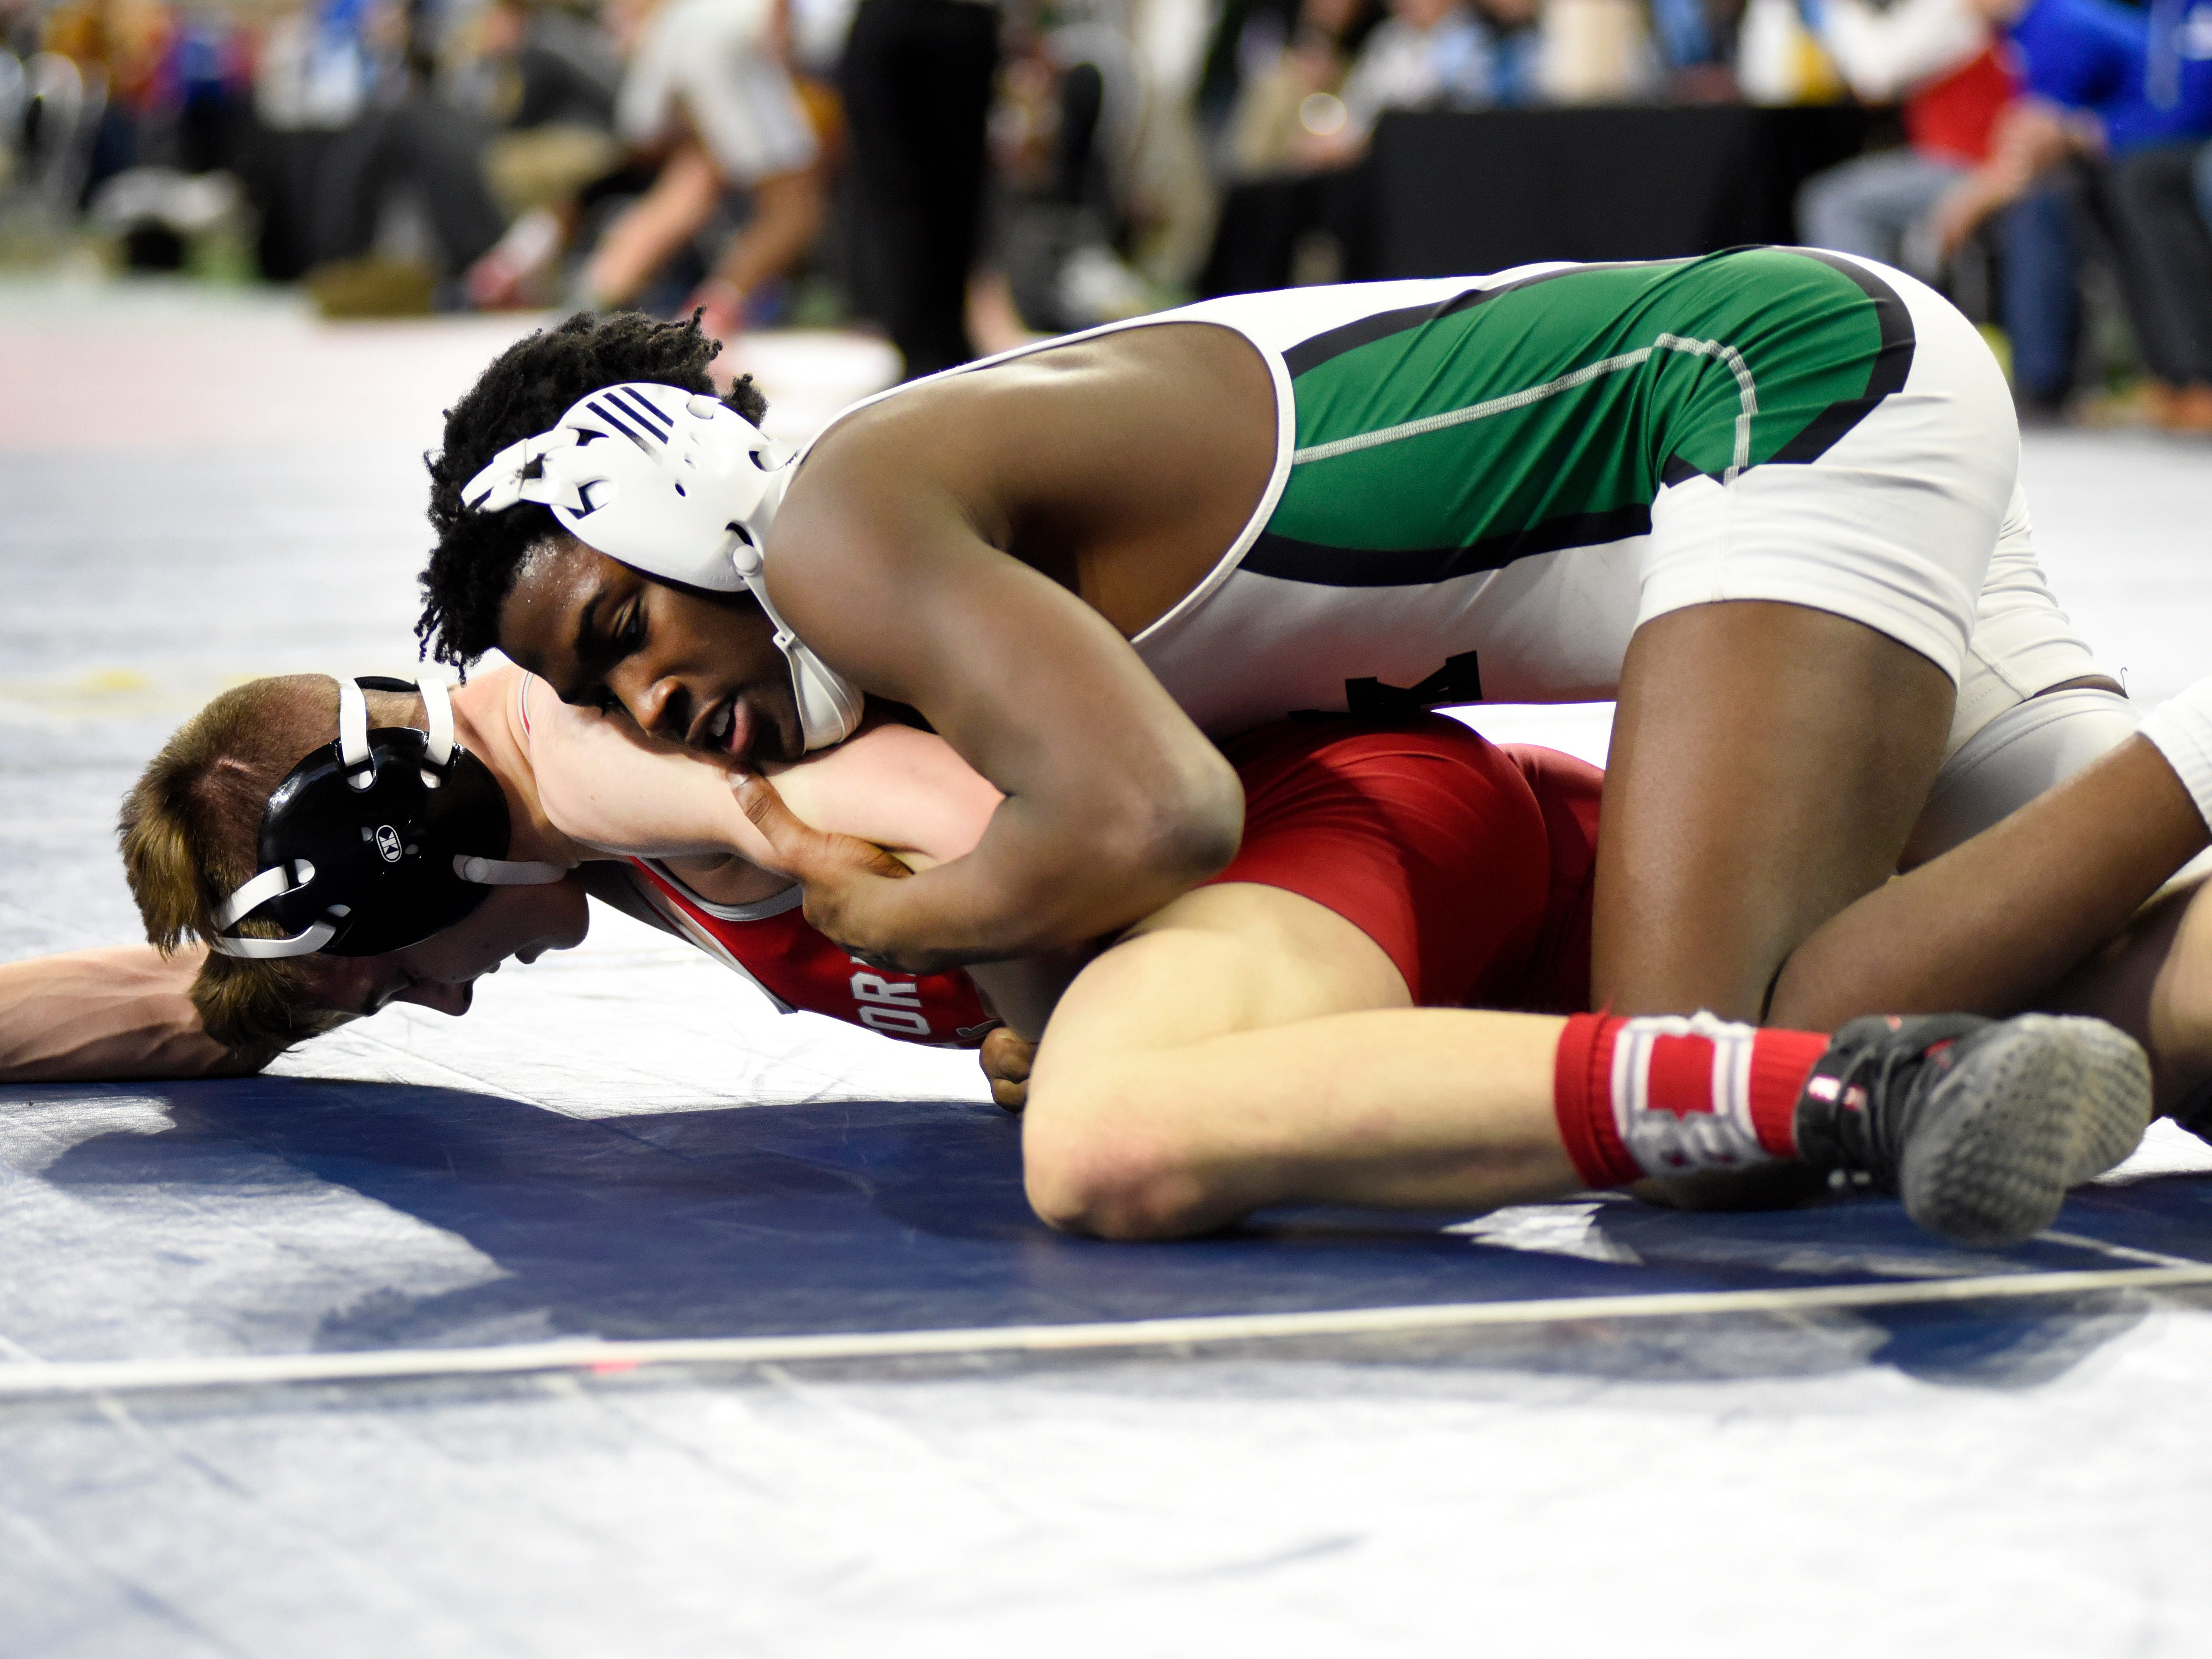 TJ Daugherty of Waterford Kettering, top, wrestles against Rollie Denker of Temperance Bedford at 130 pounds in a state quarterfinals match.